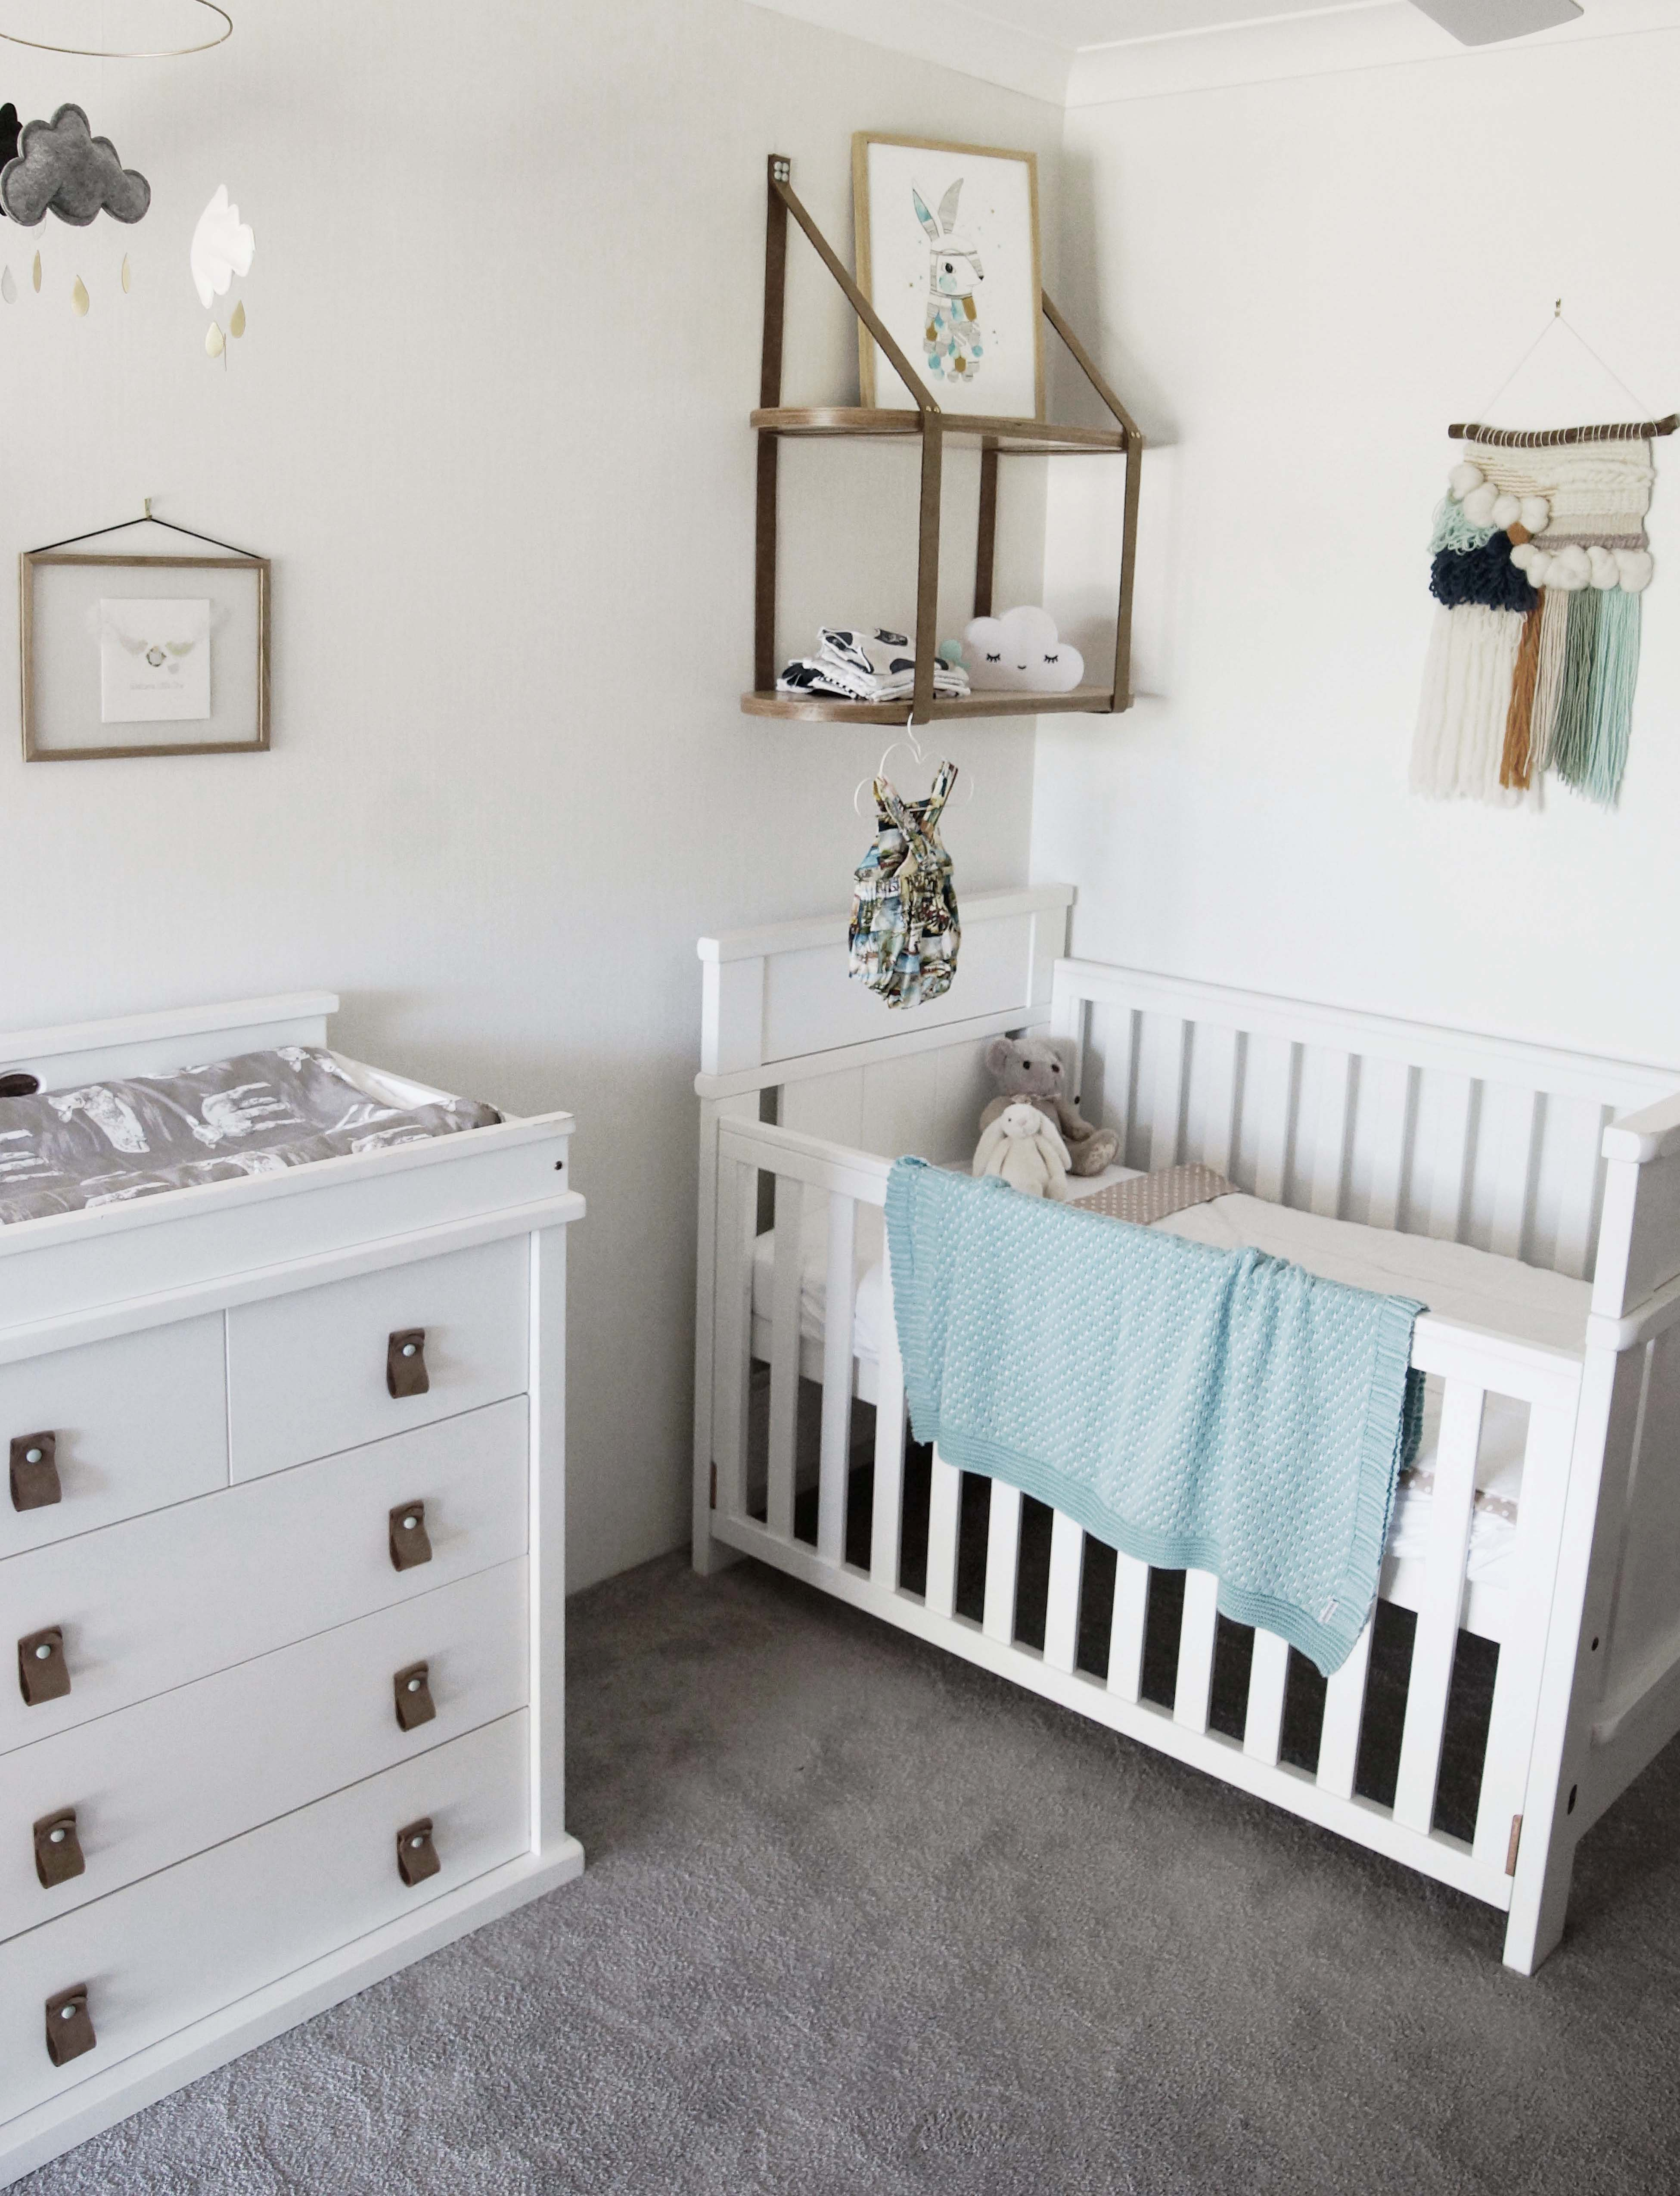 Nursery Design- Change Table, Shelves and Cot